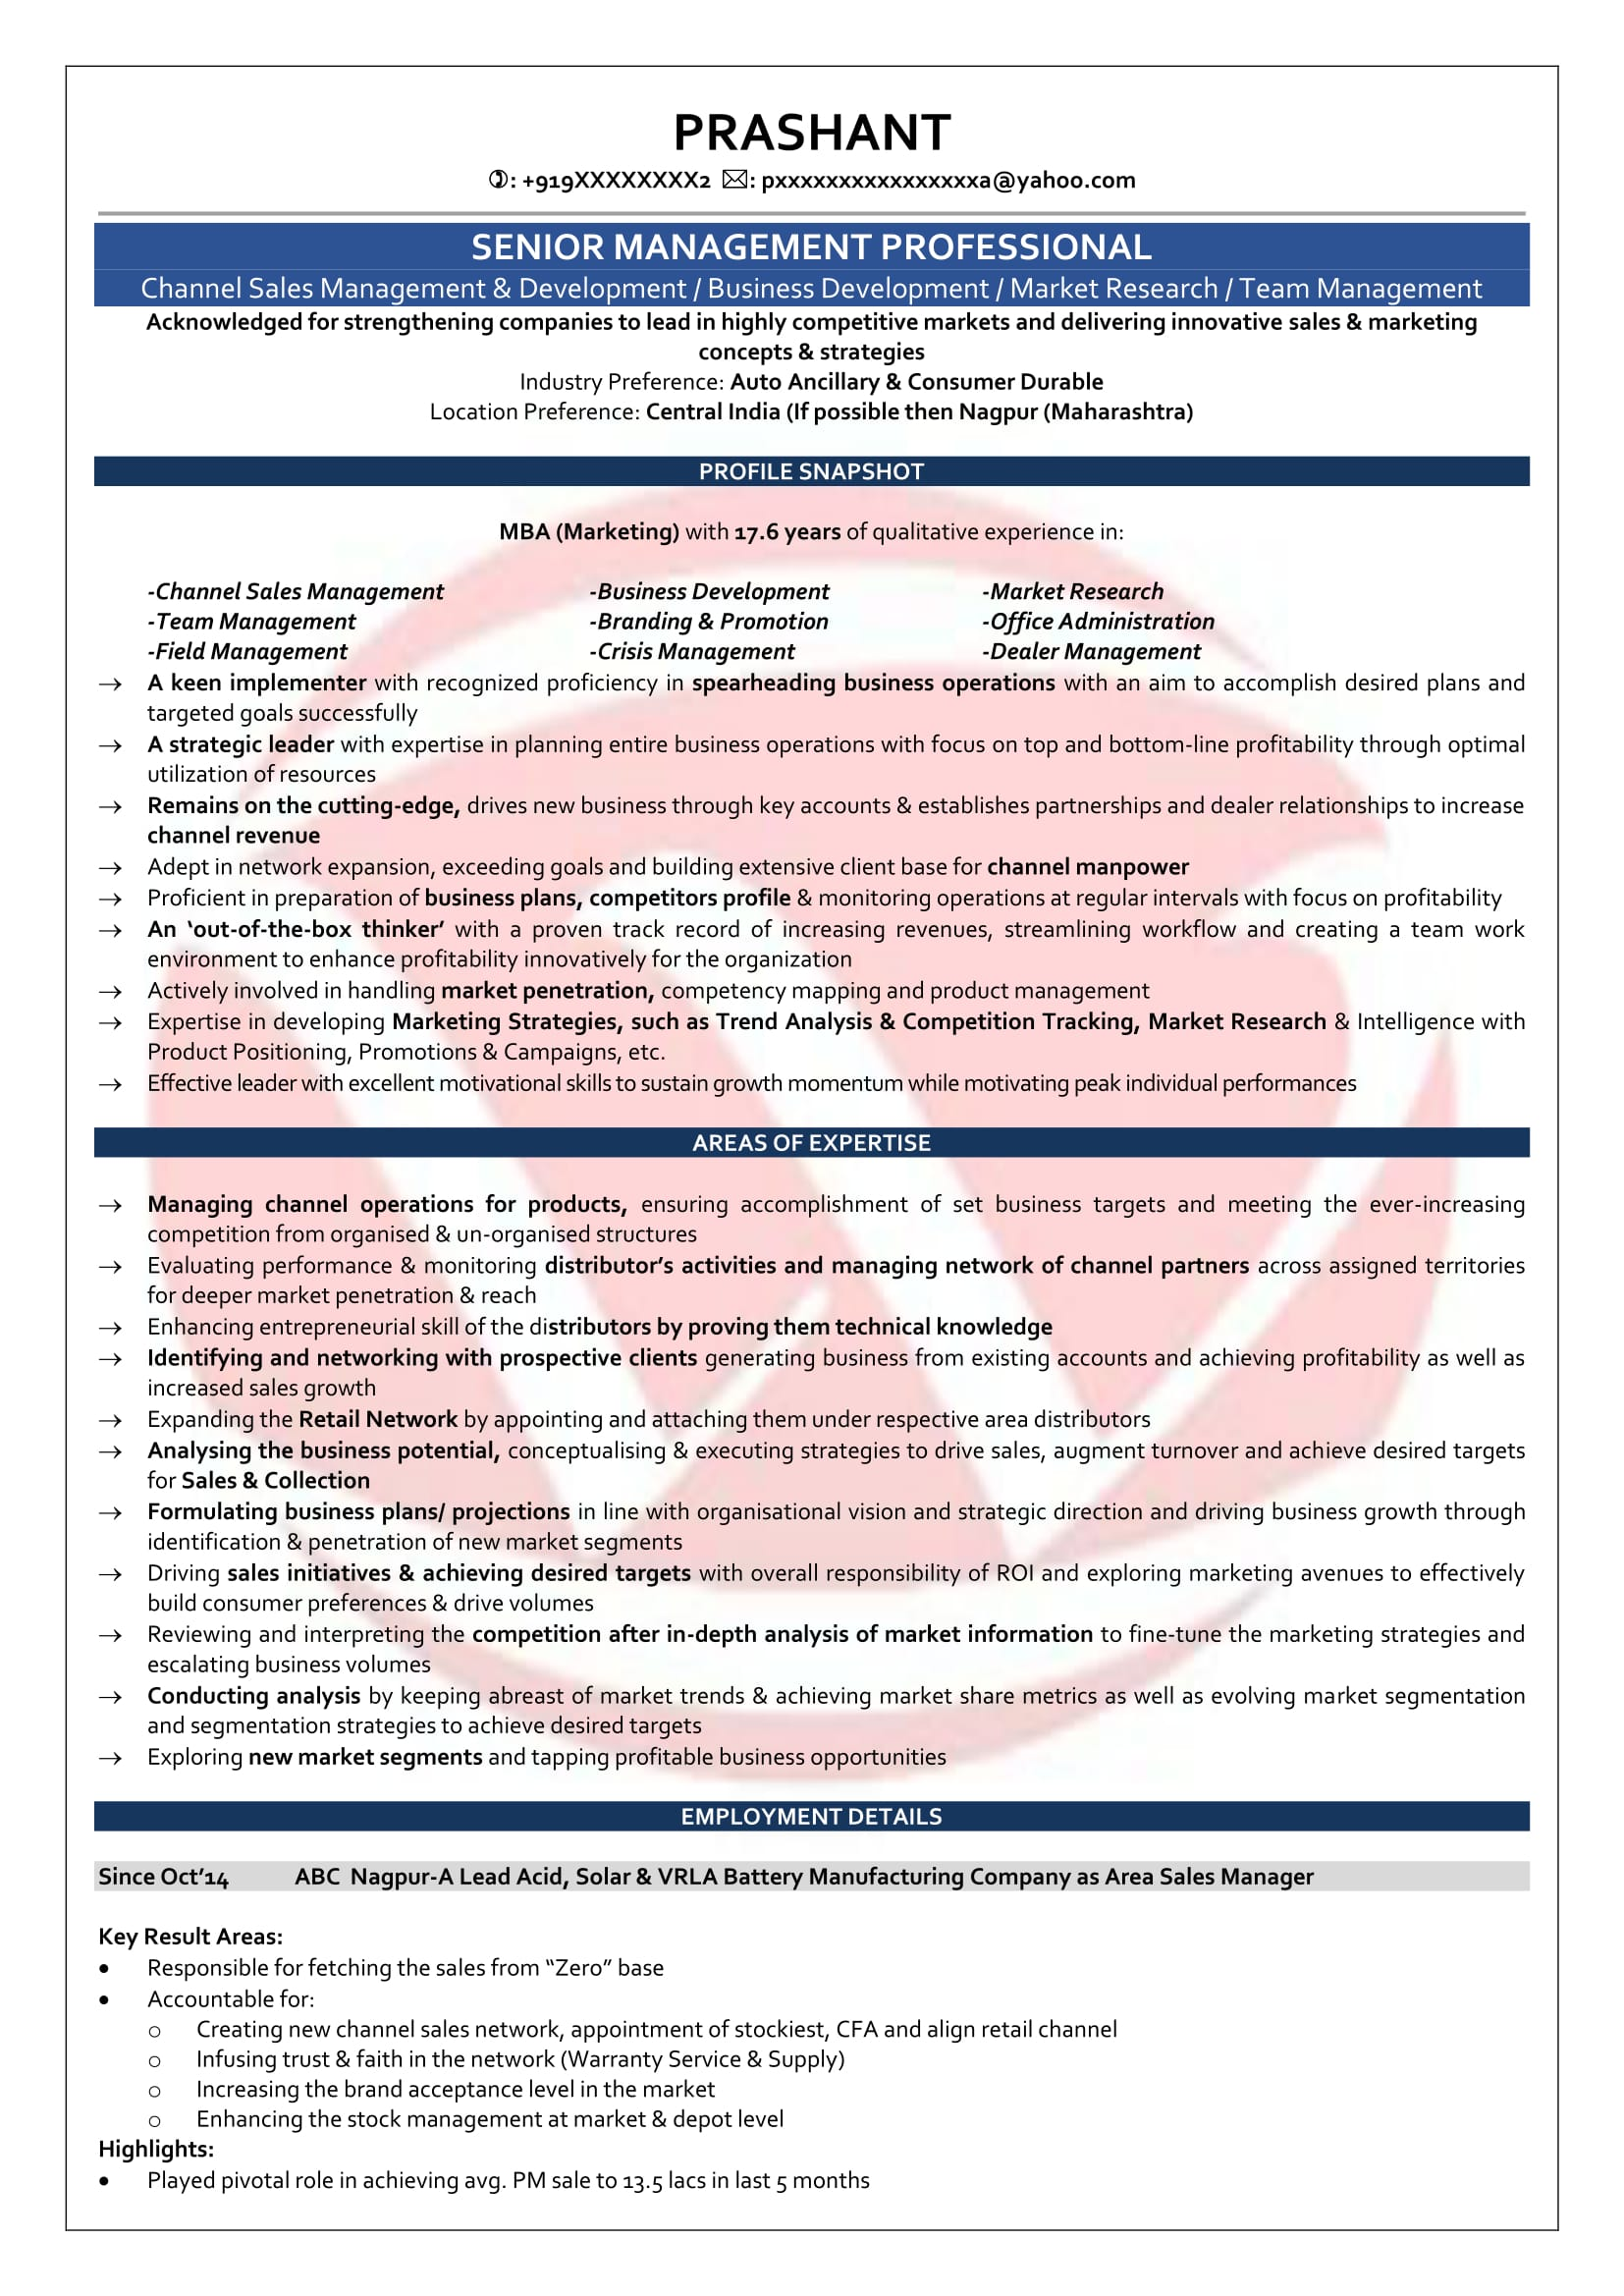 area manager sample resumes resume format templates for years experience lawn service Resume Sample Resume For 13 Years Experience